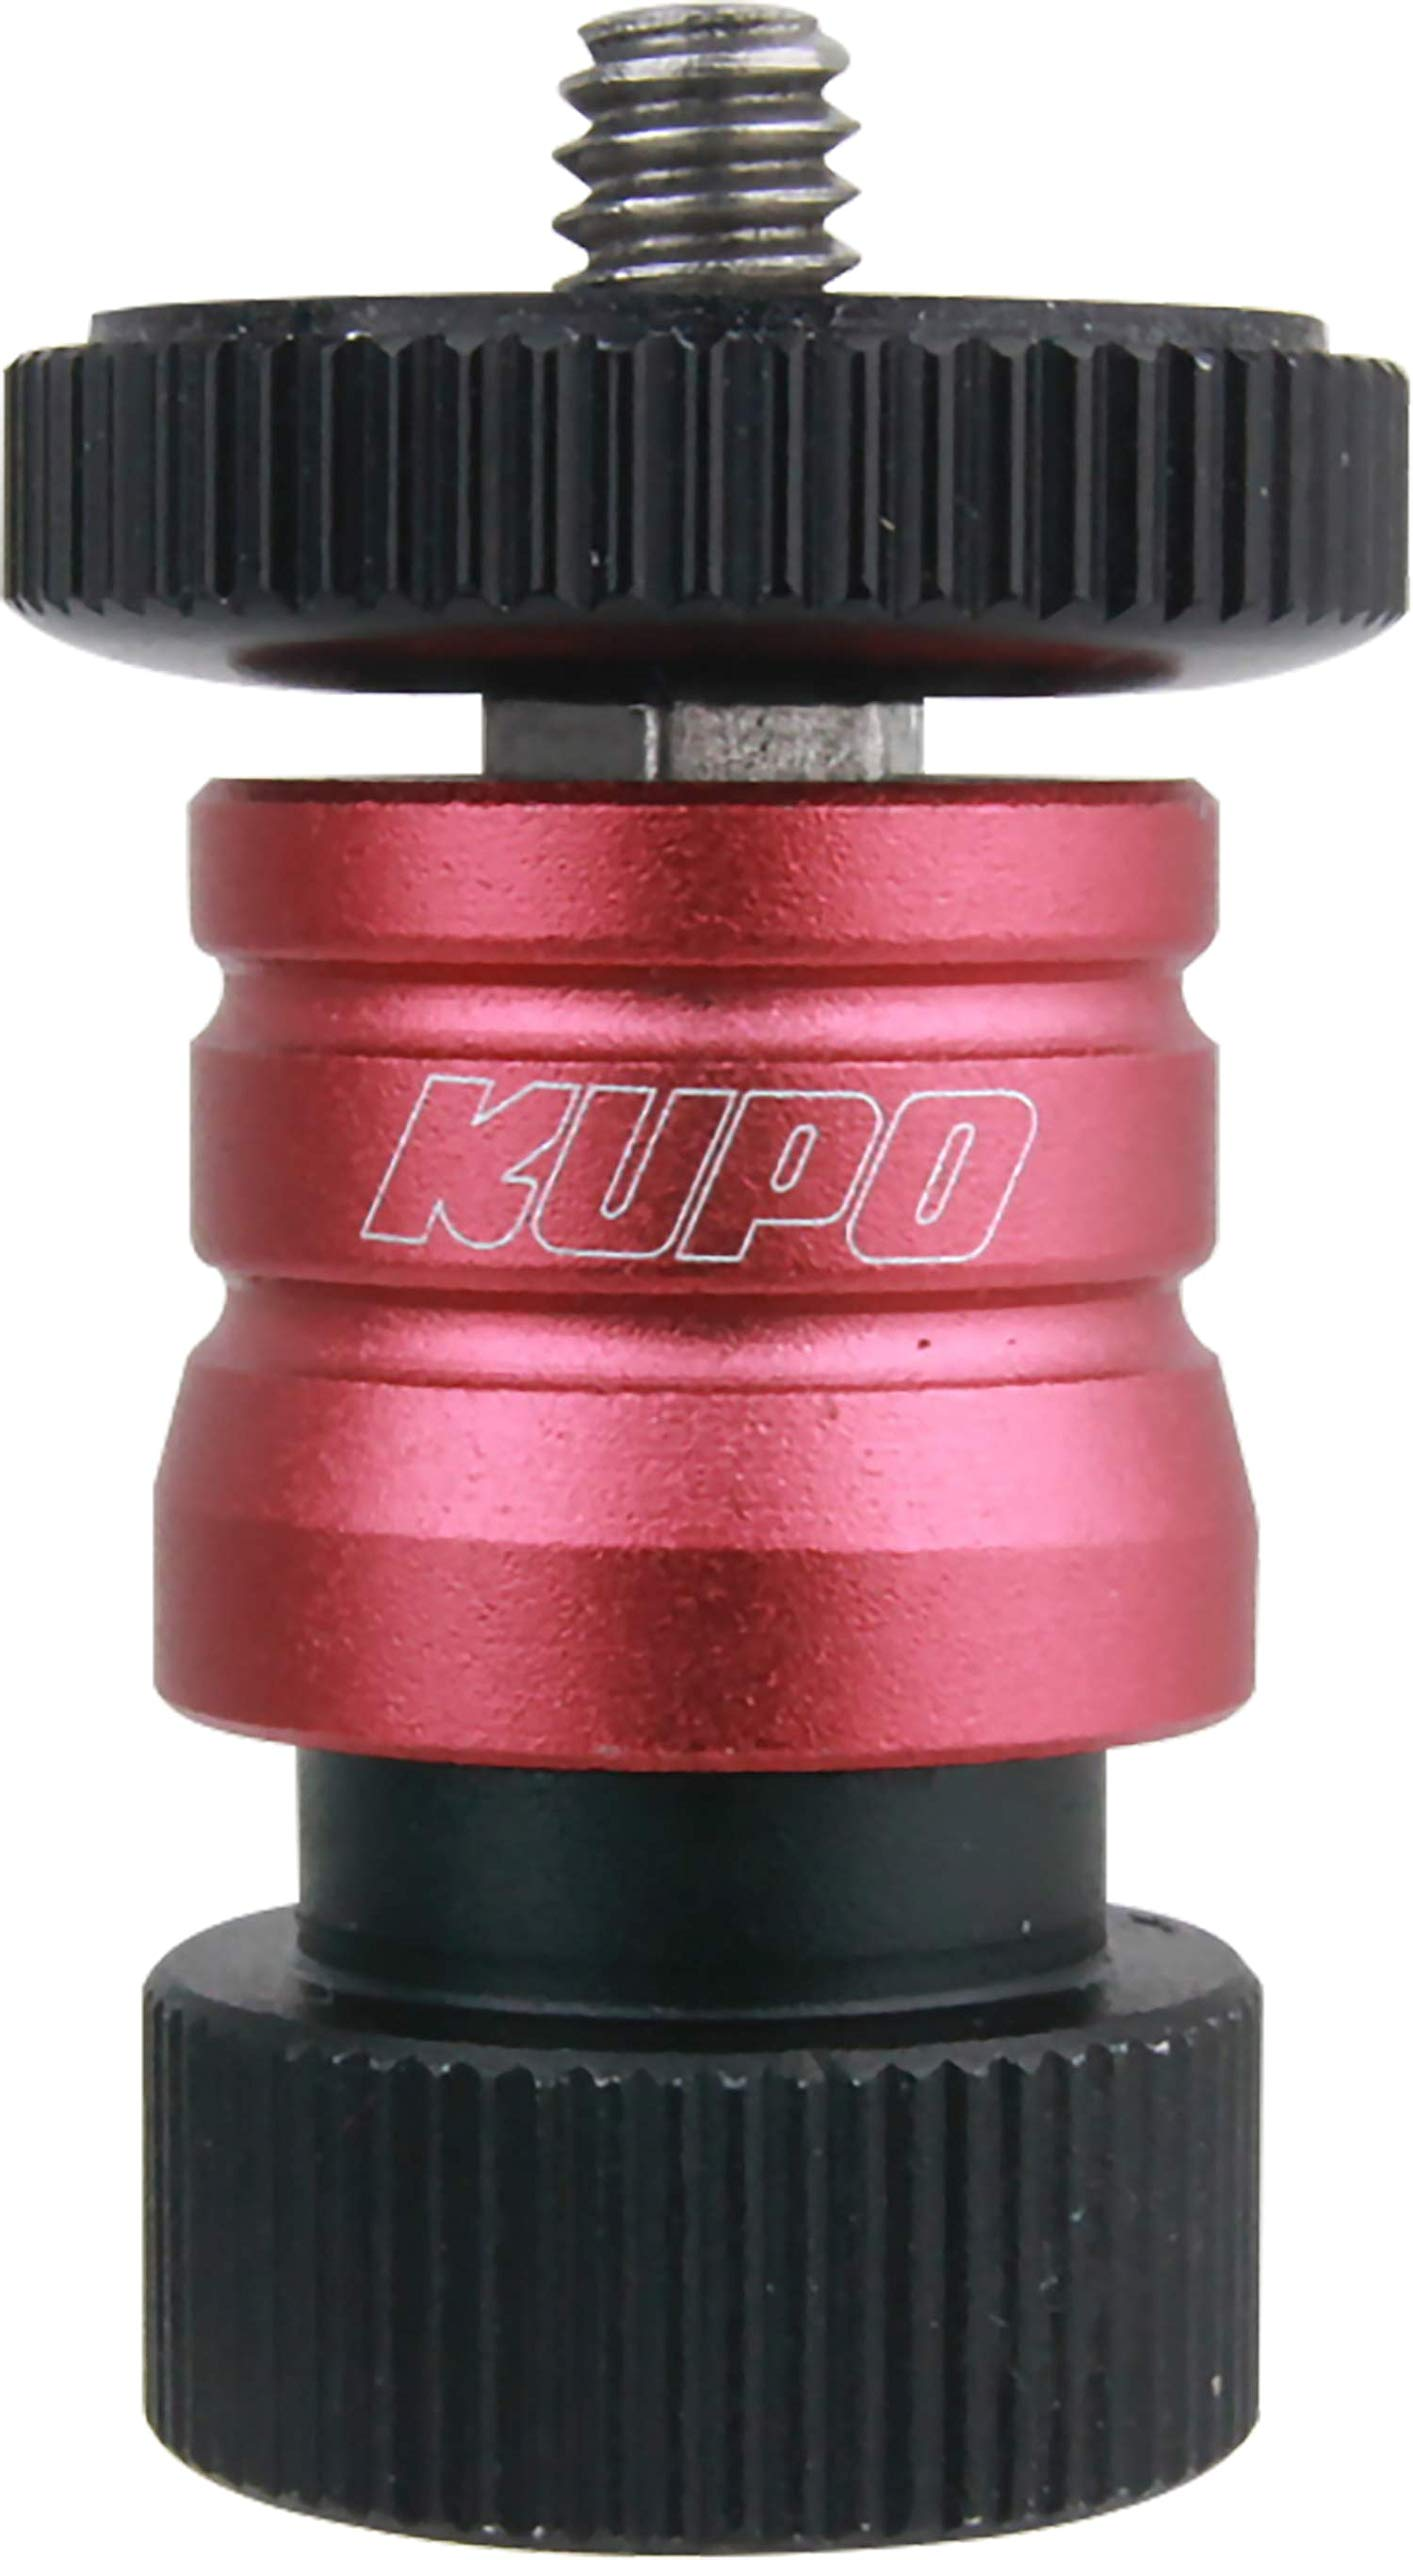 Kupo Quick Release Adapter Set - 1/4''-20 (KG013912) by Kupo